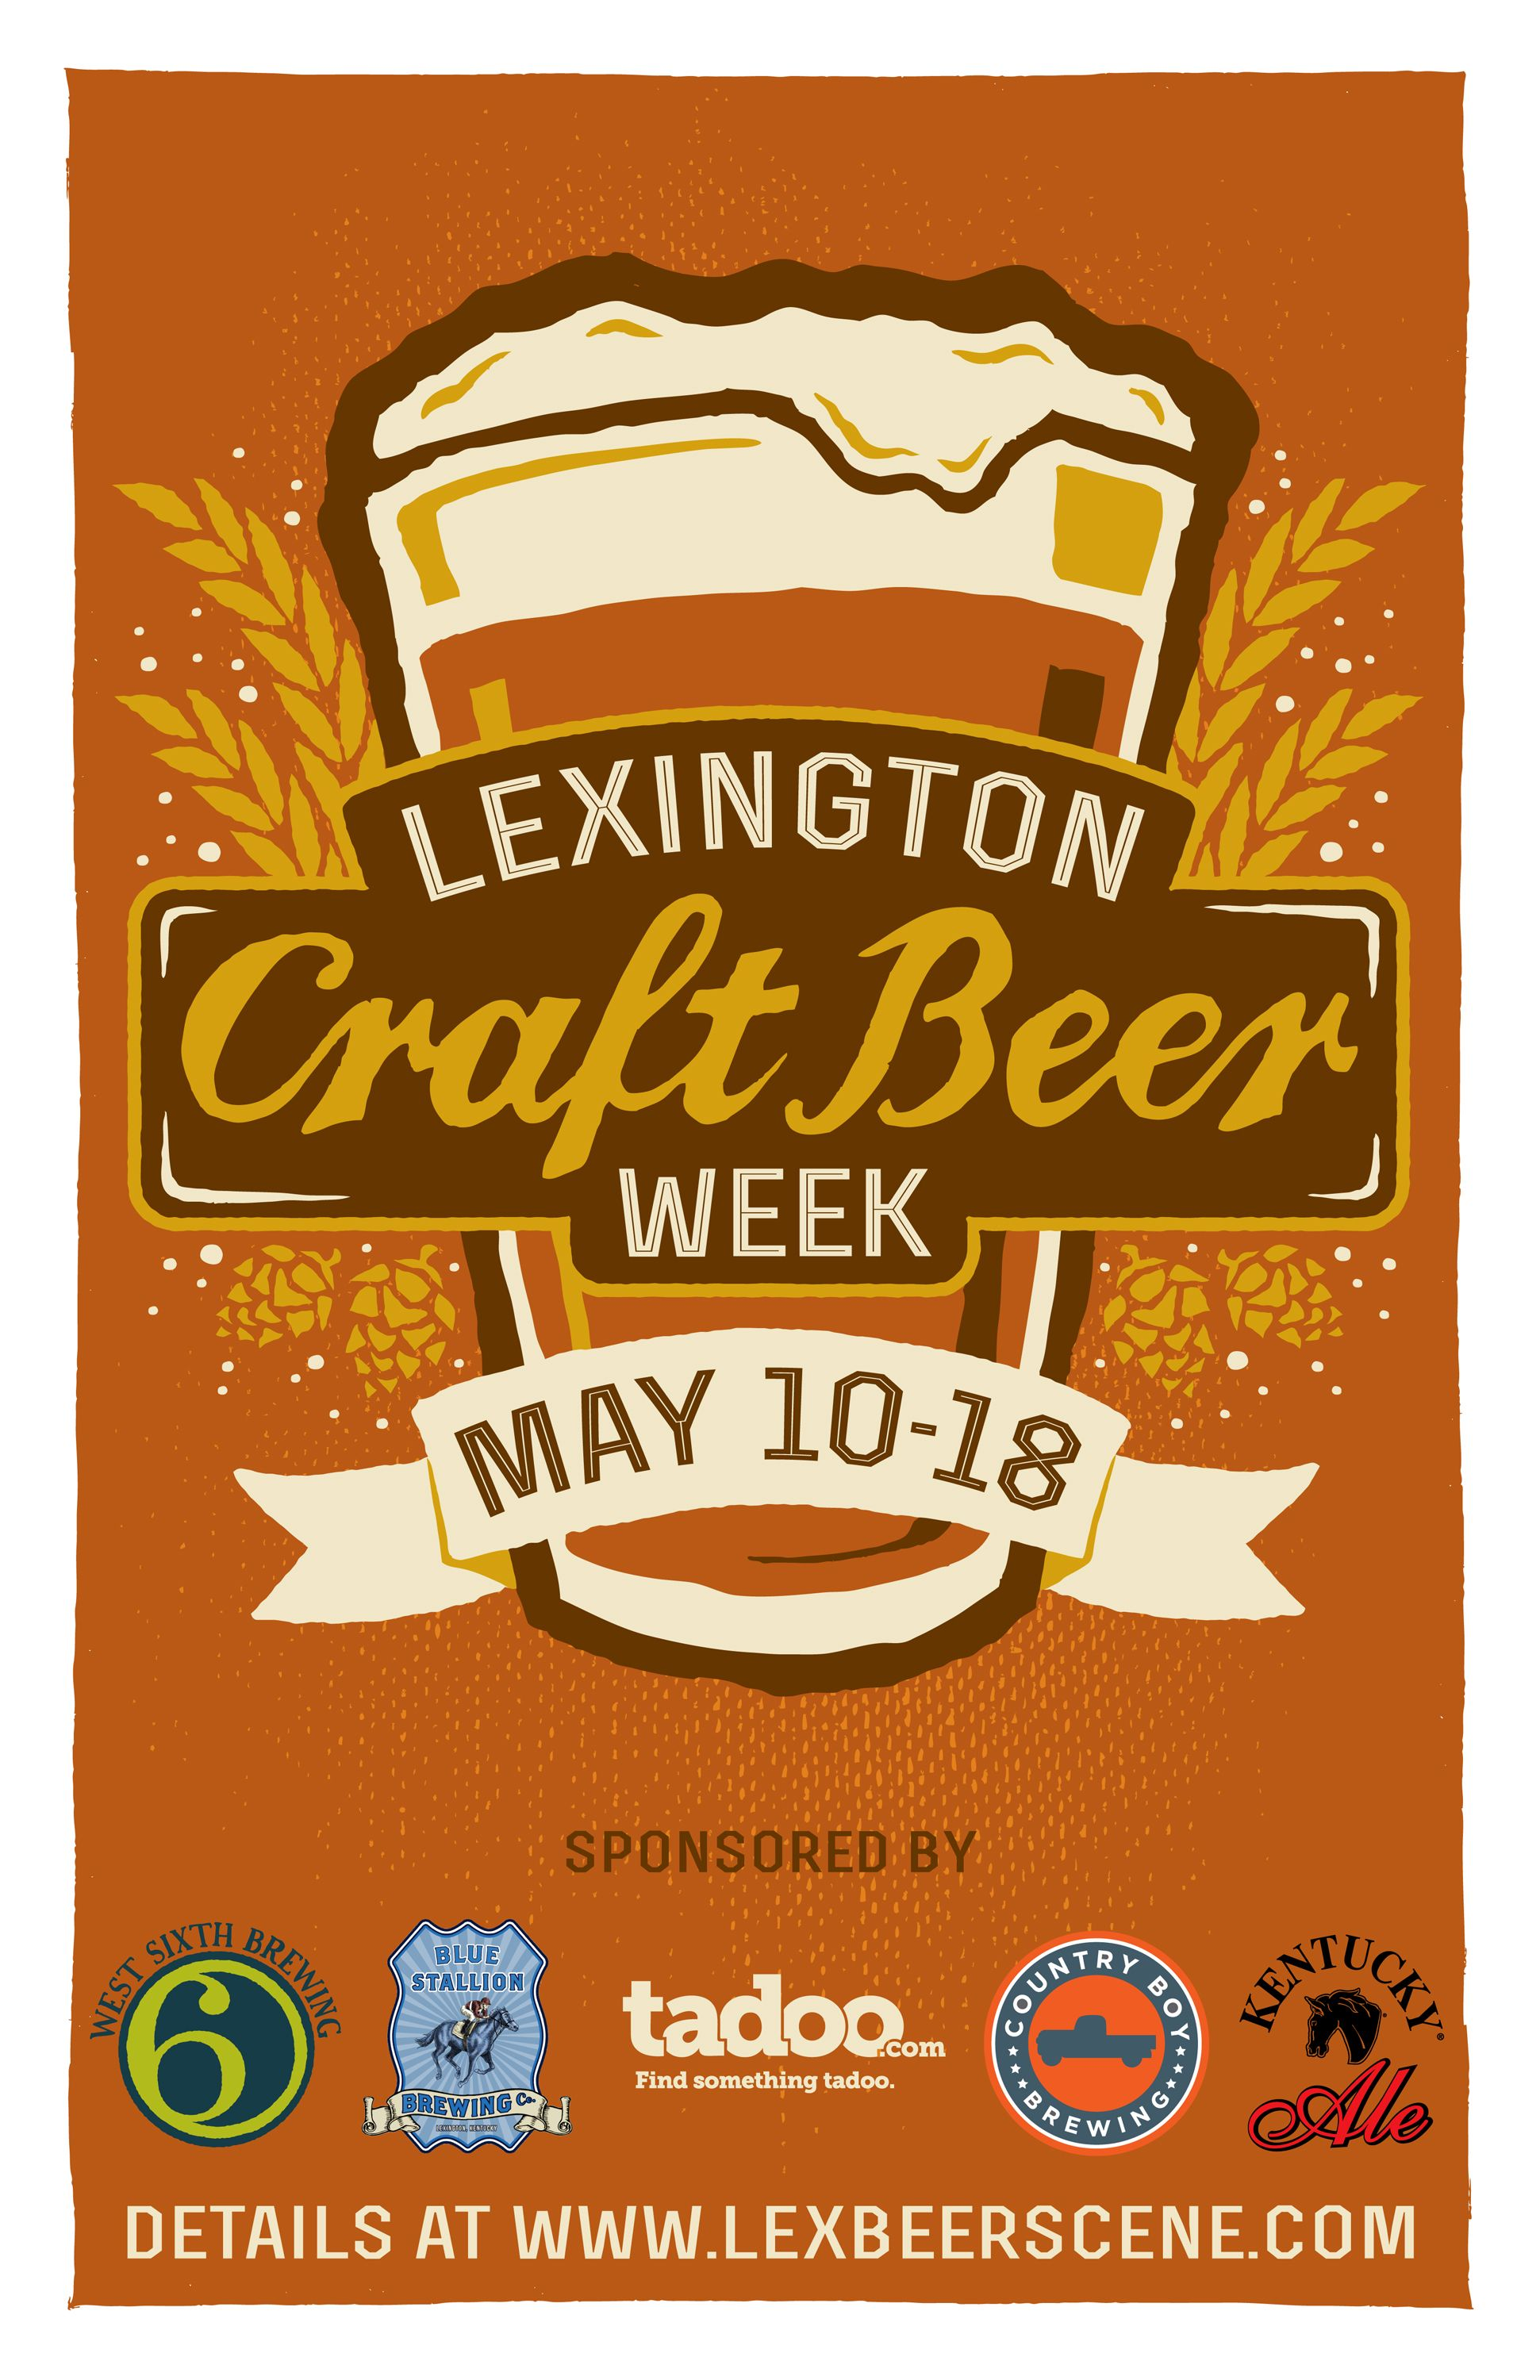 Craft Beer Week Spotlights Lexington's New Love For Great